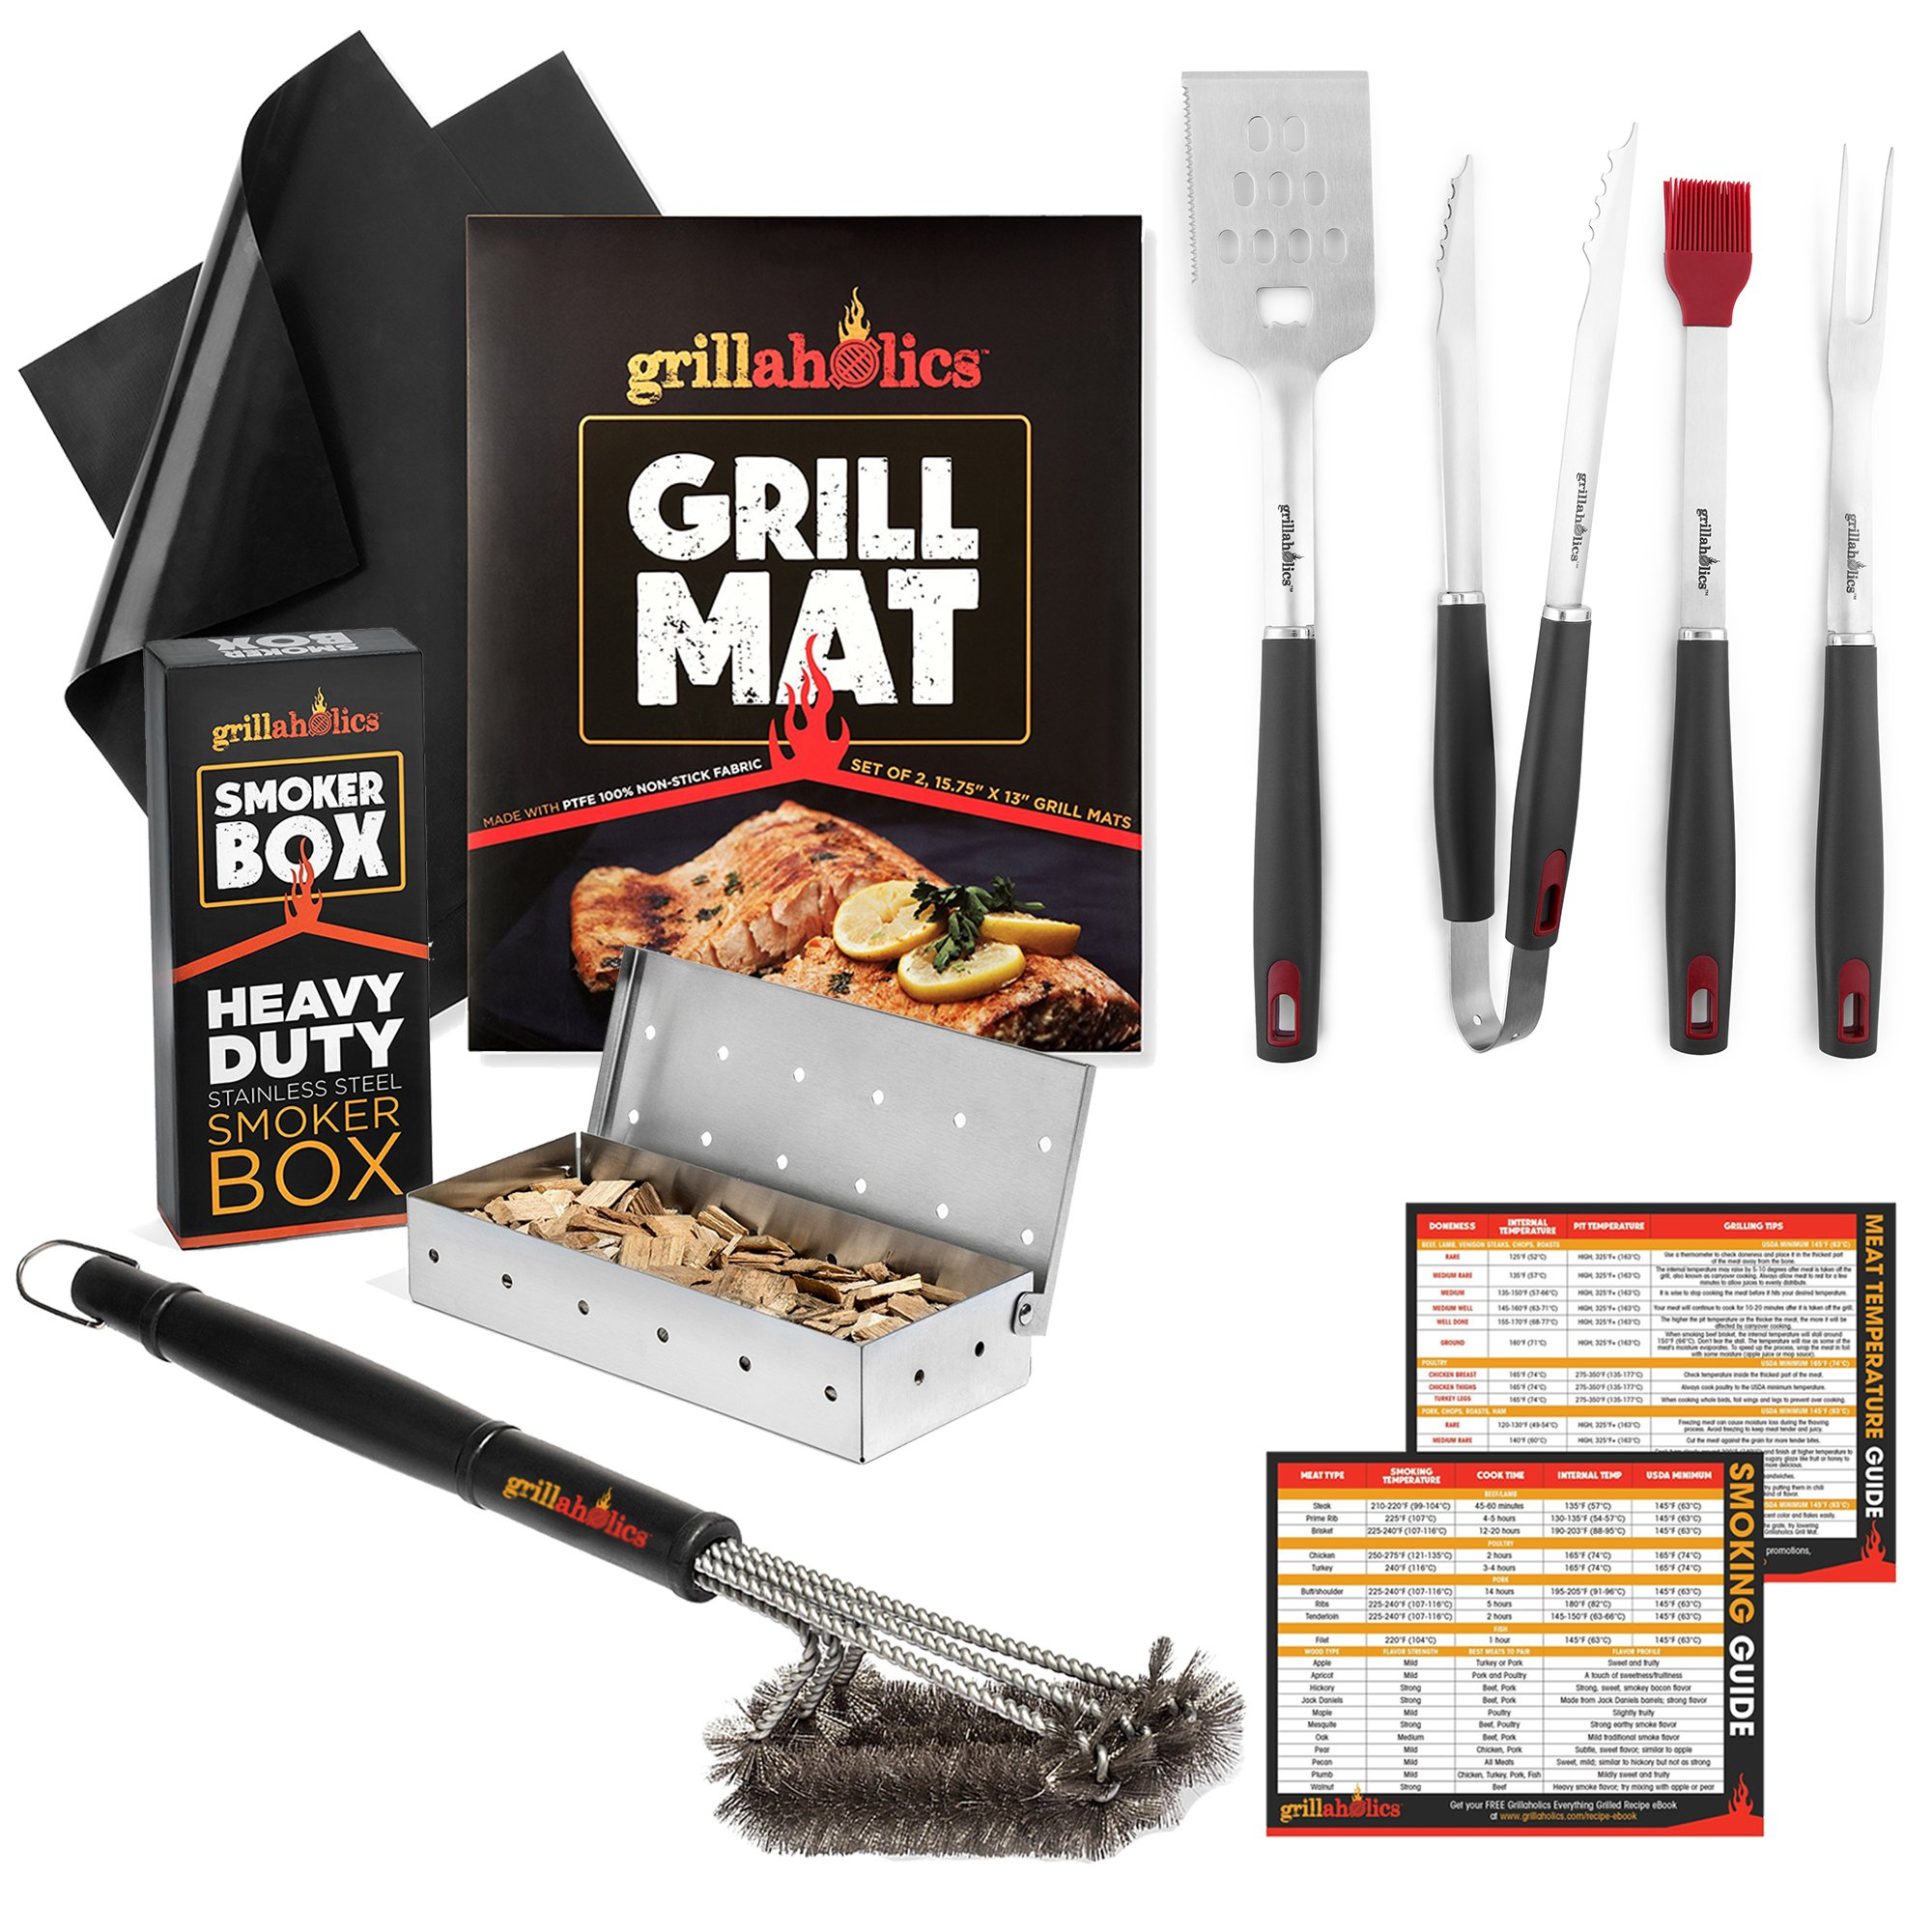 Grillaholics Complete Grilling Package - Includes Set of 2 Non Stick Grill Mats, 4-Piece BBQ Tool Set, Stainless Steel Smoker Box, Heavy Duty Grilling Brush, and Meat Temperature Guide